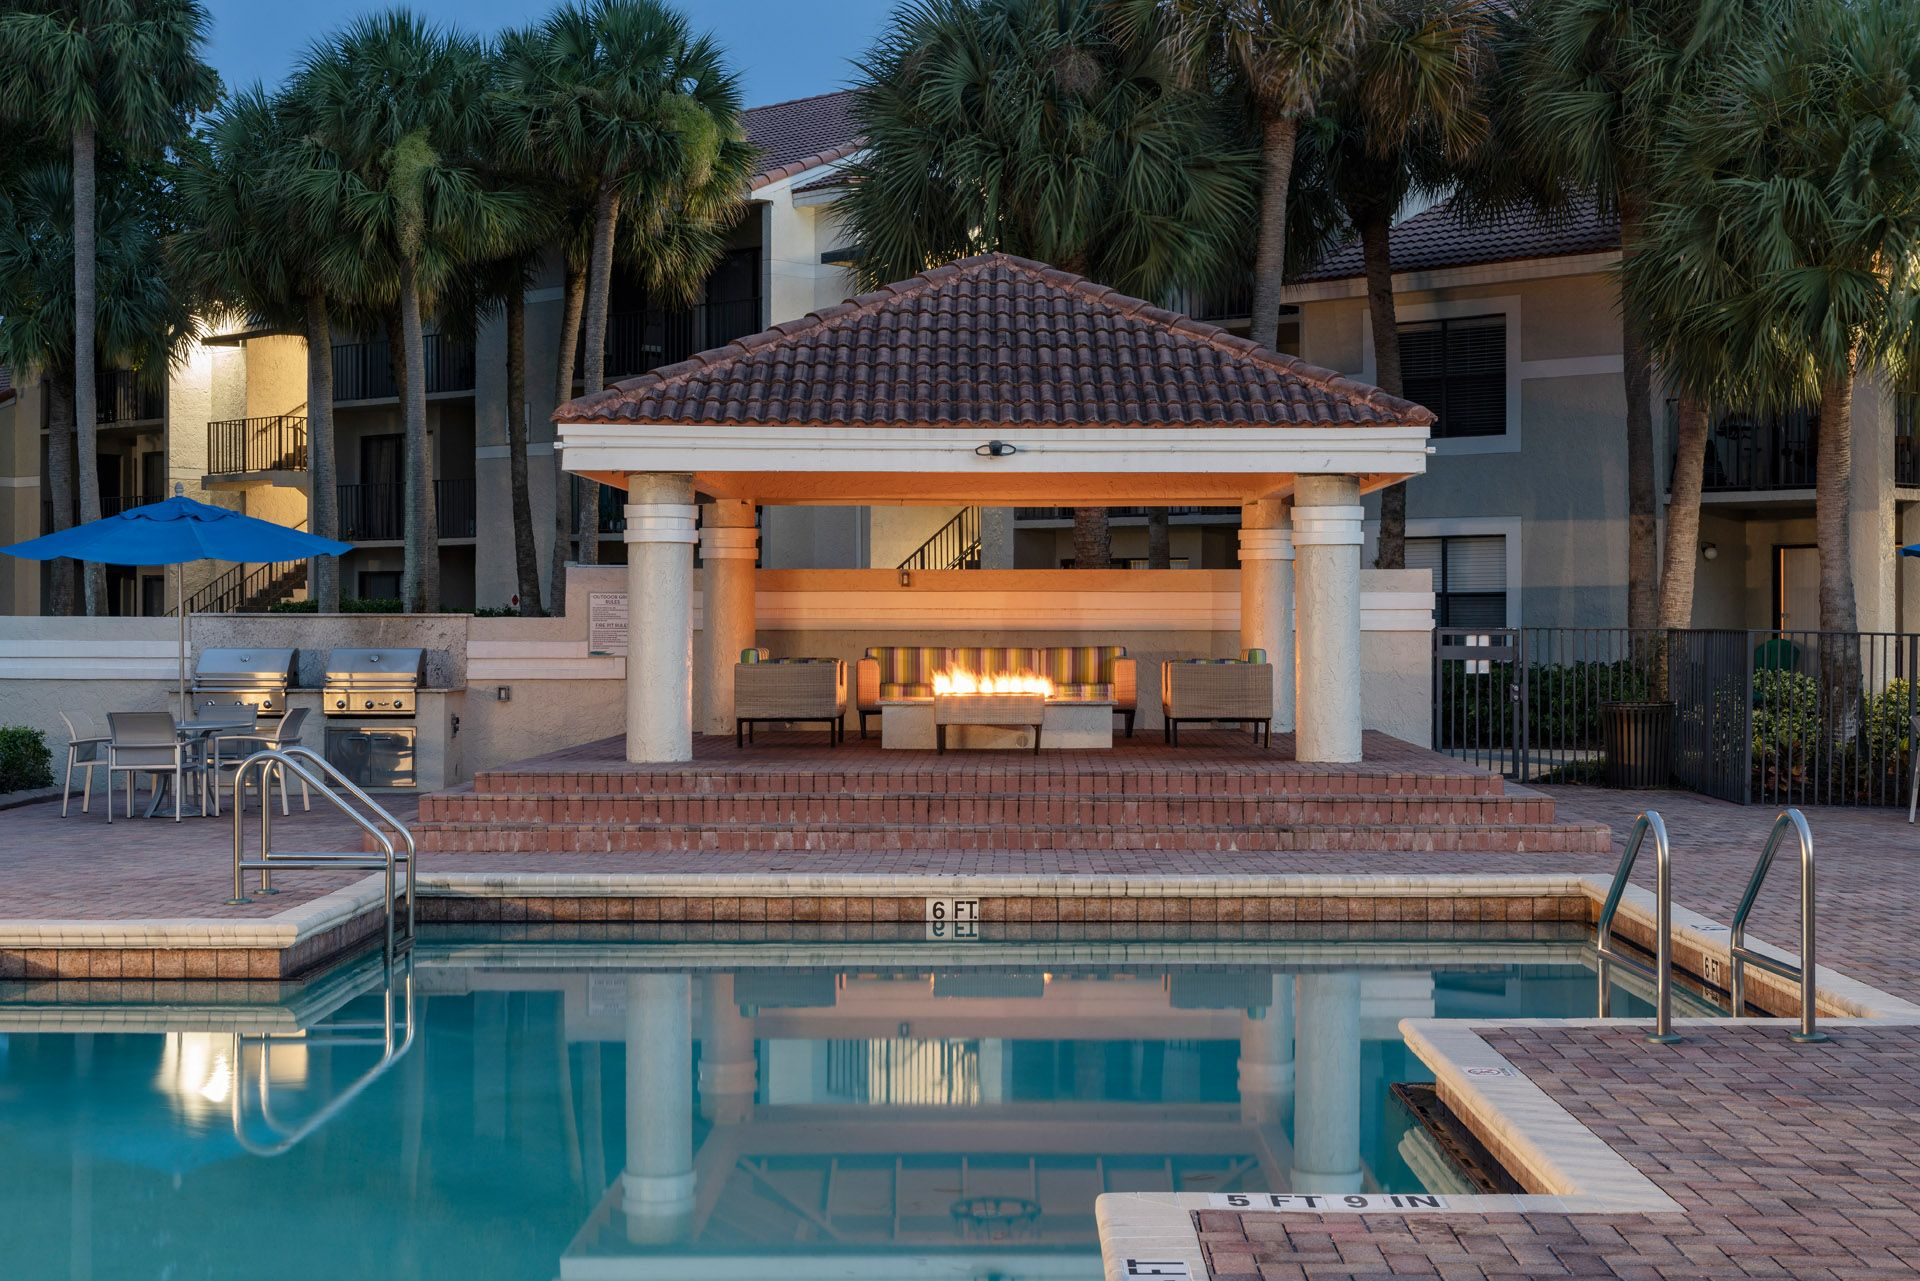 Swimming pool with seating and outdoor fire pit